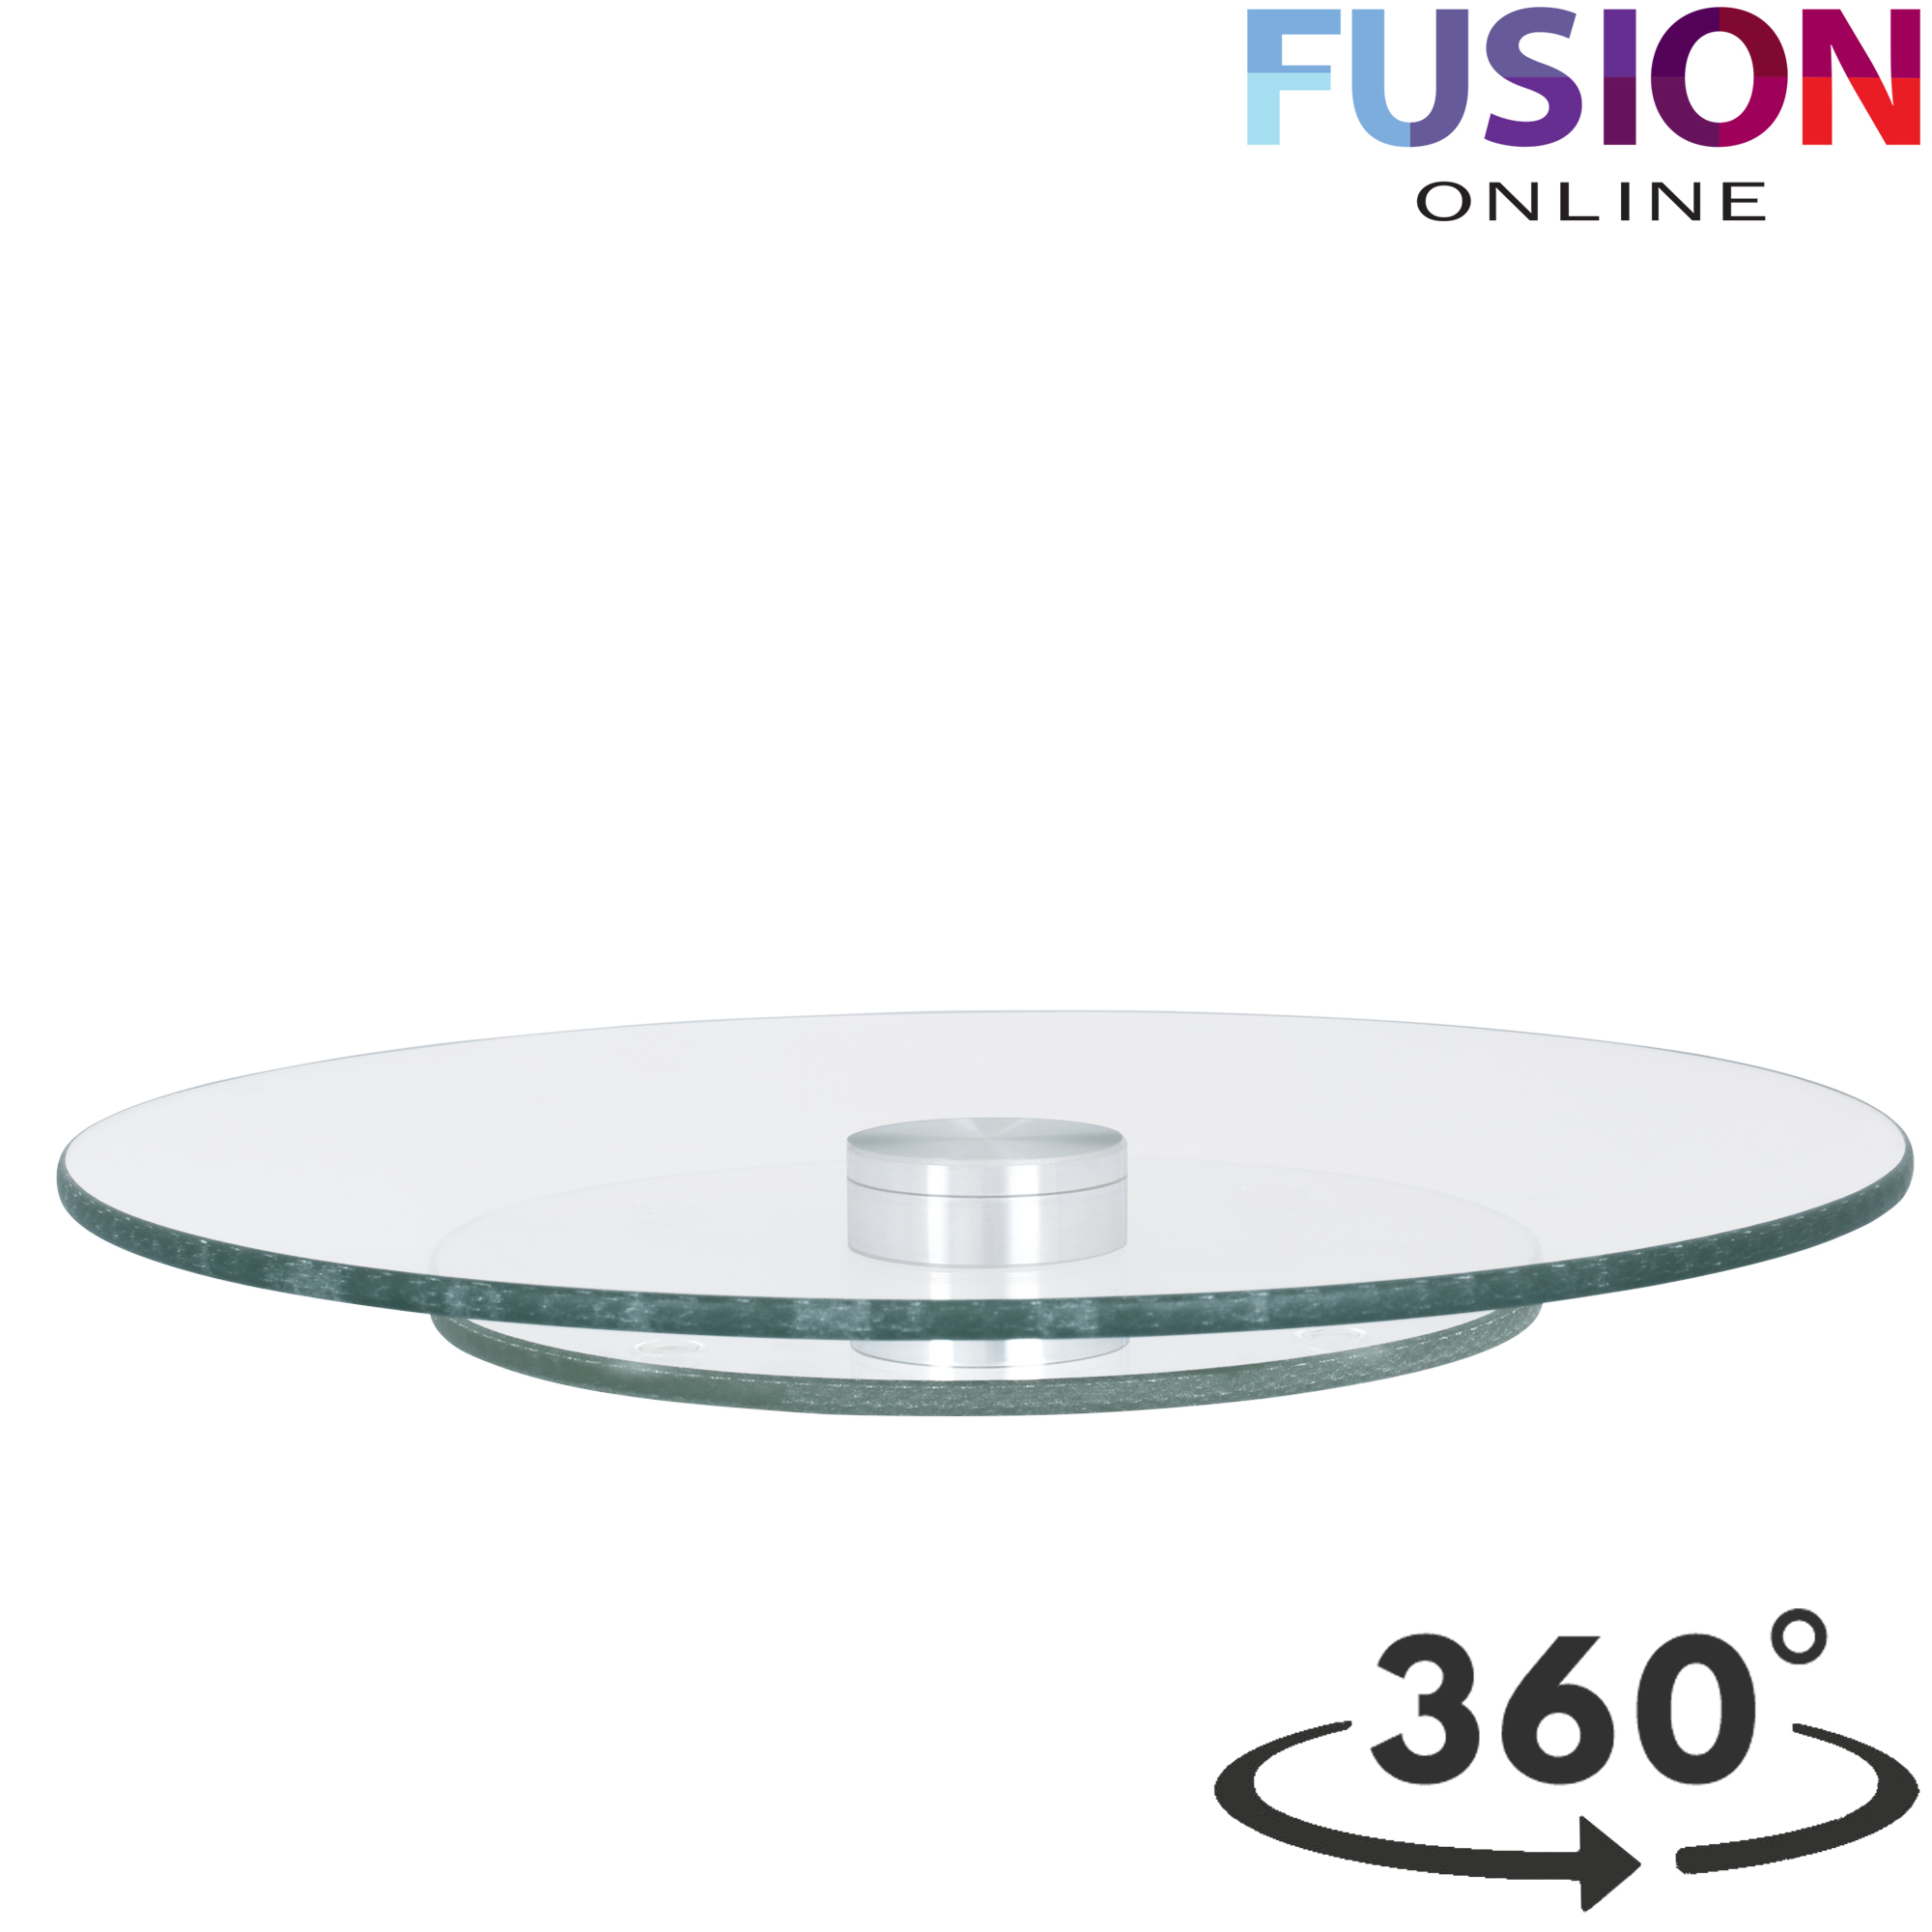 Tempered Glass Lazy Susan Rotating Turntable Serving Tray